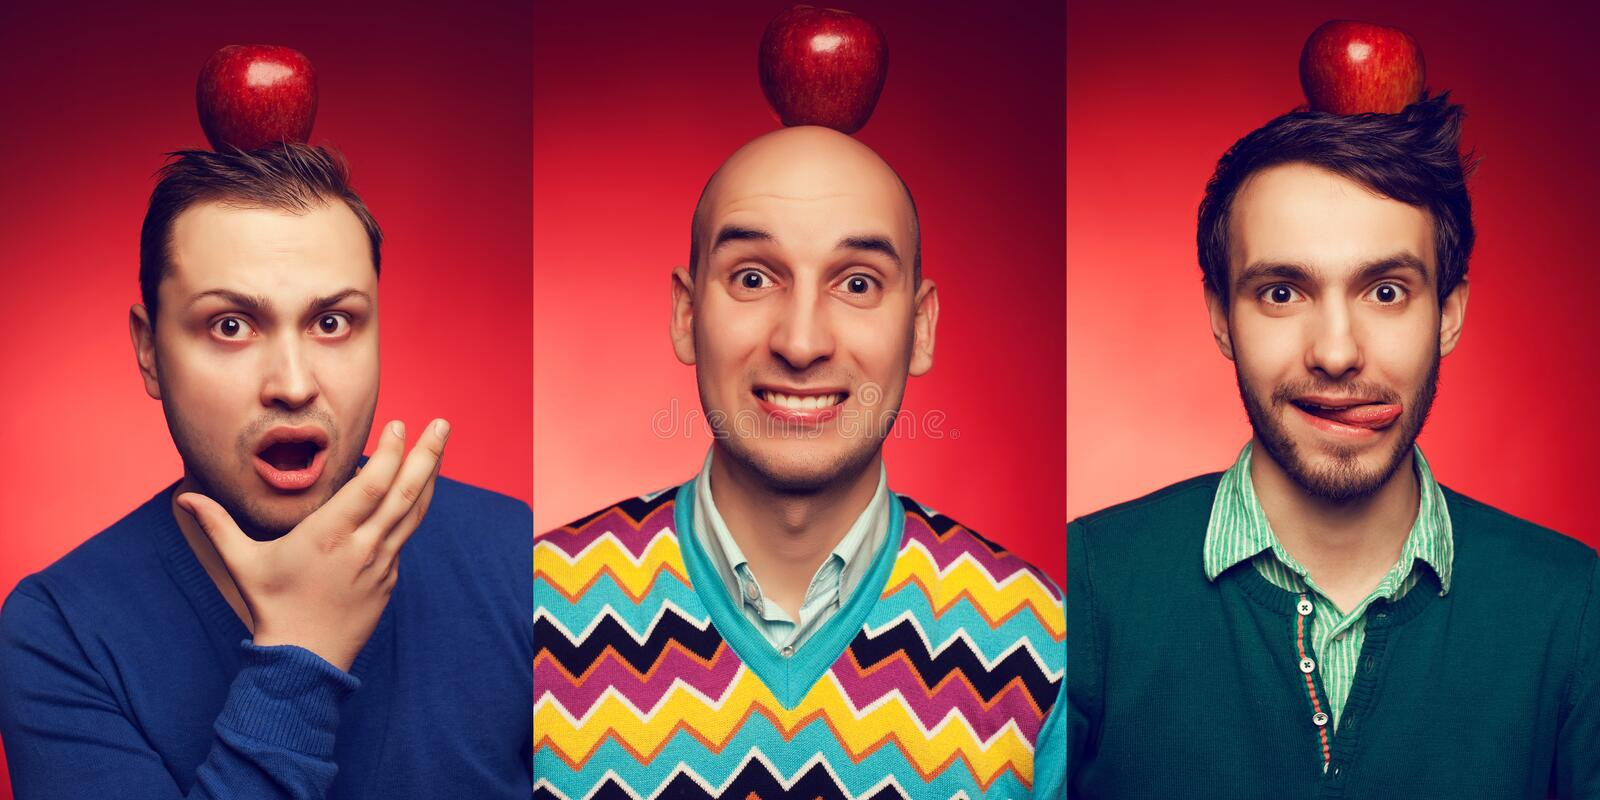 Emotive portrait of three funny and confused students posing over red background with red apple on head. Education (healthcare) c royalty free stock photo